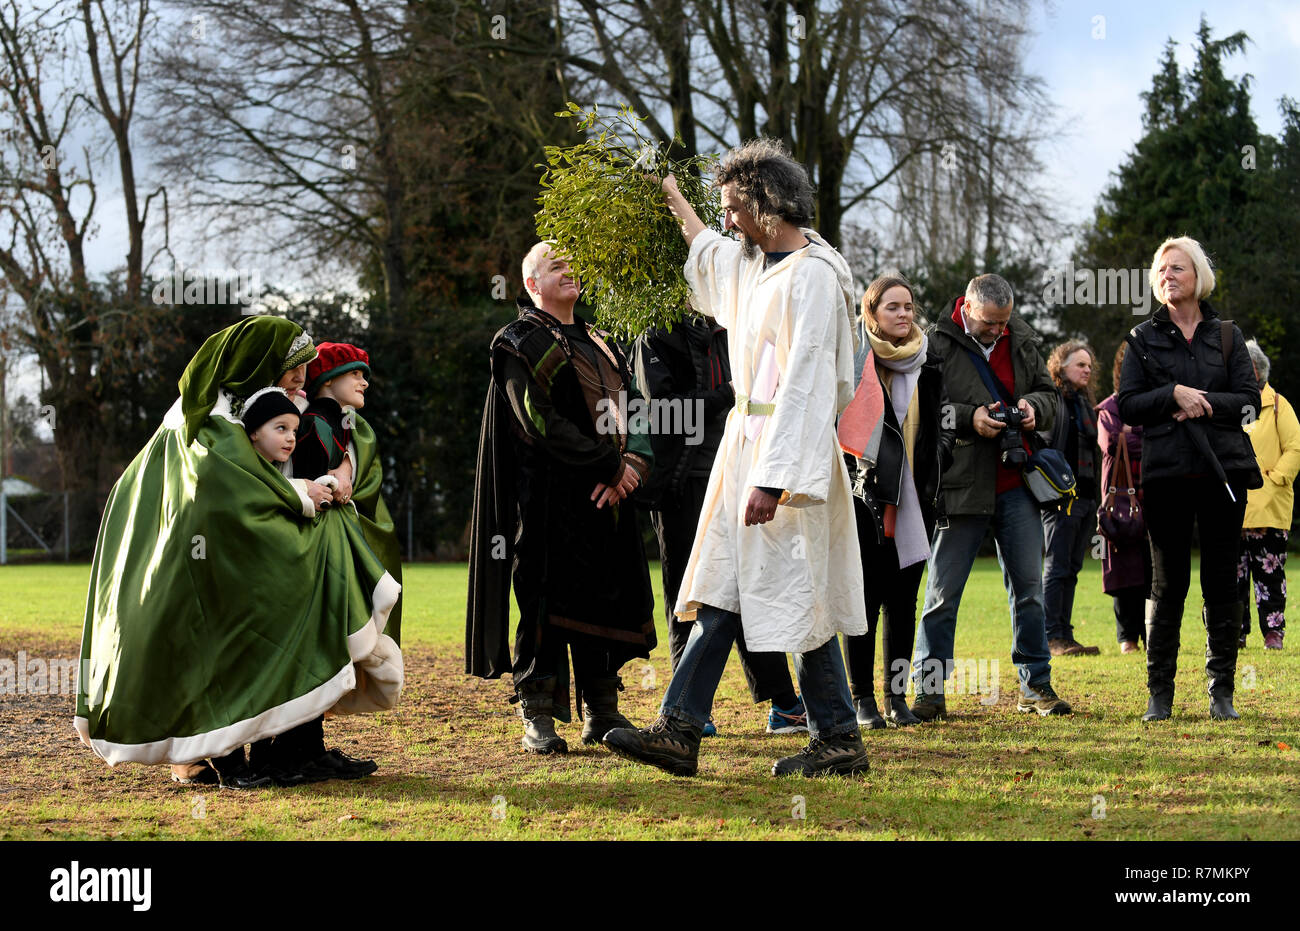 Druids blessing of the mistletoe ceremony at Tenbury Wells, Worcestershire known as the capital of English mistletoe. DAVE BAGNALL PHOTOGRAPHY - Stock Image